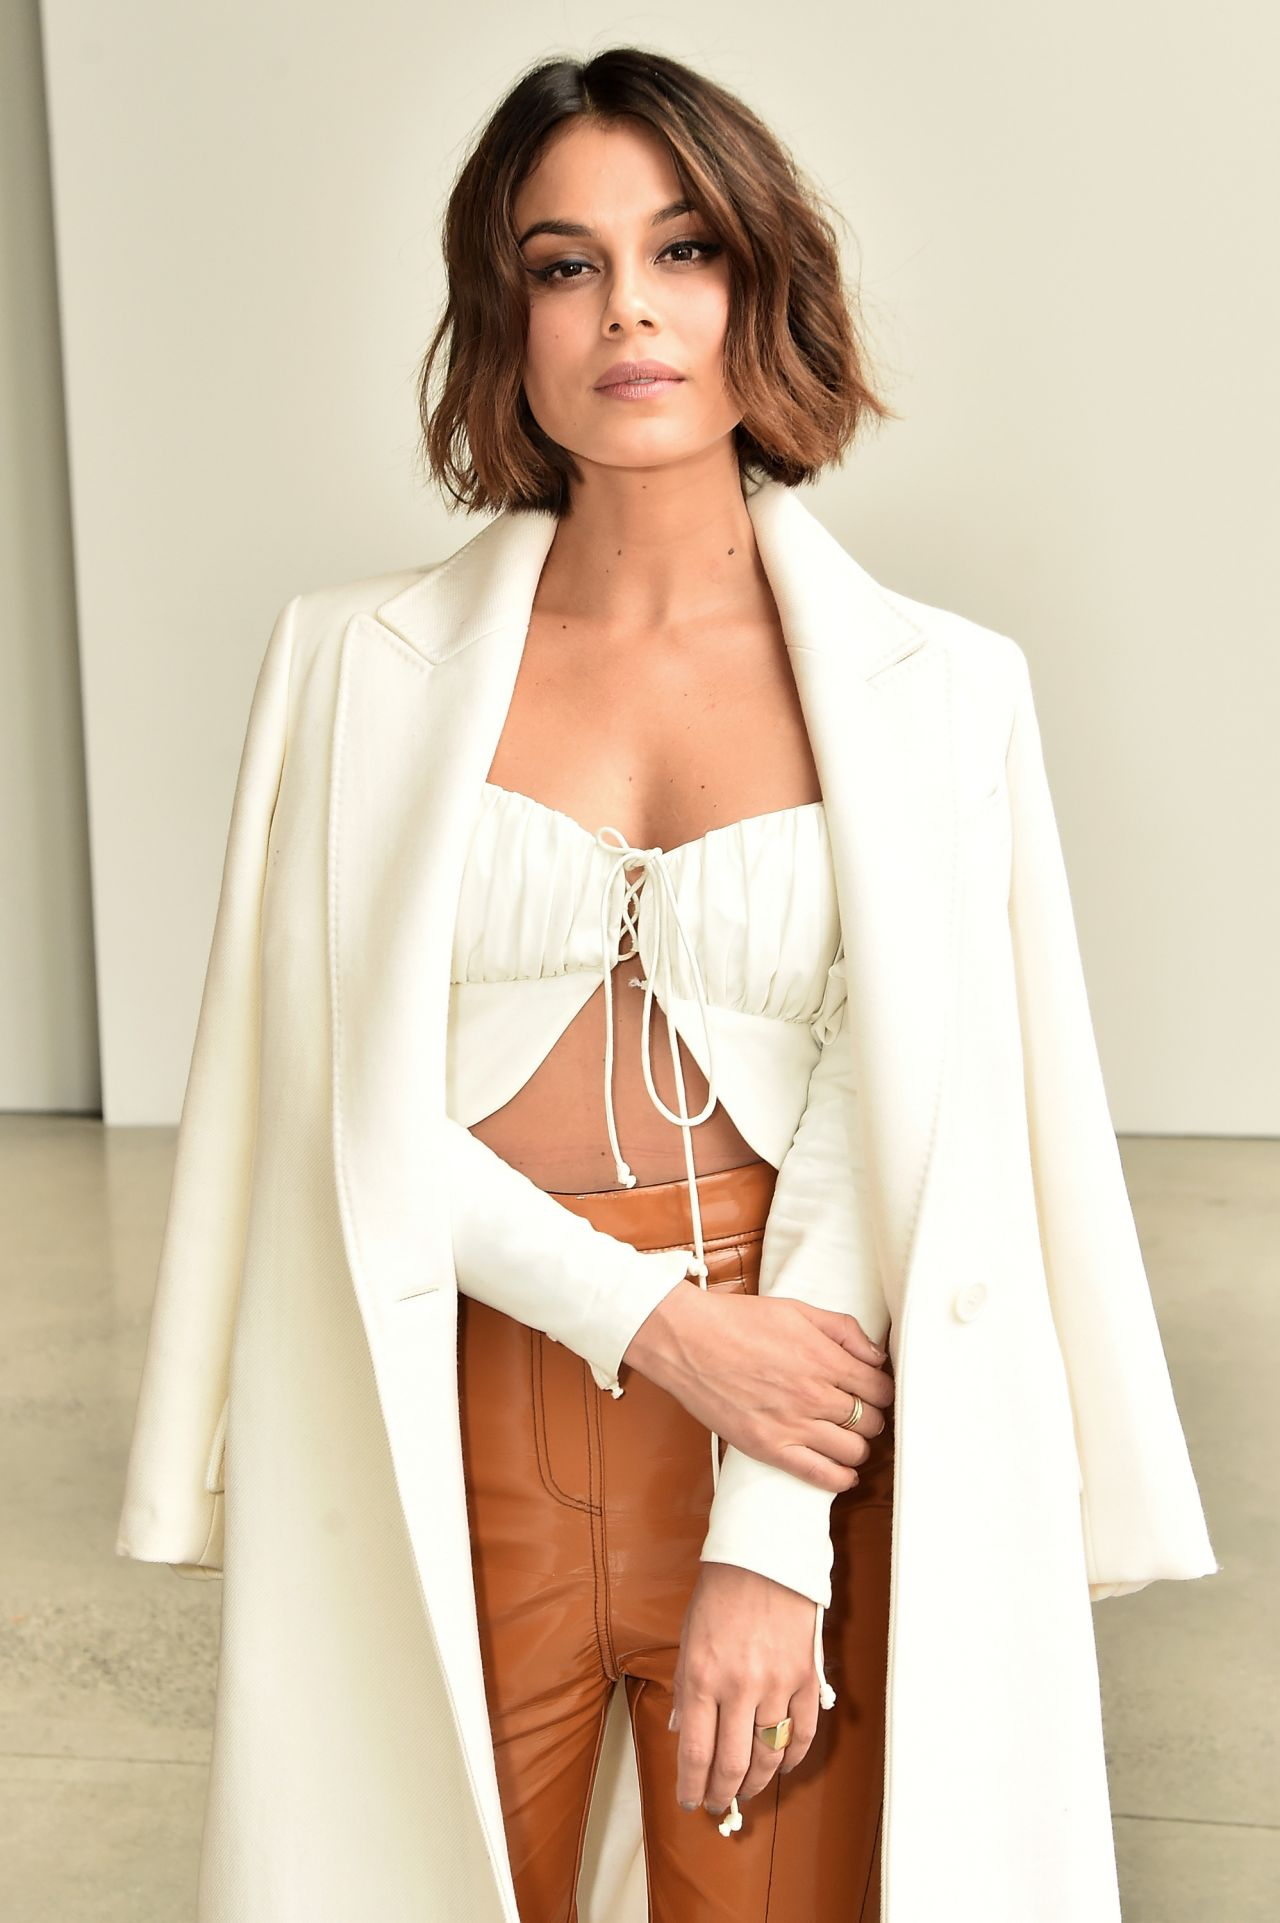 Nathalie Kelley At Dion Lee Fashion Show Nyfw 02 09 2018